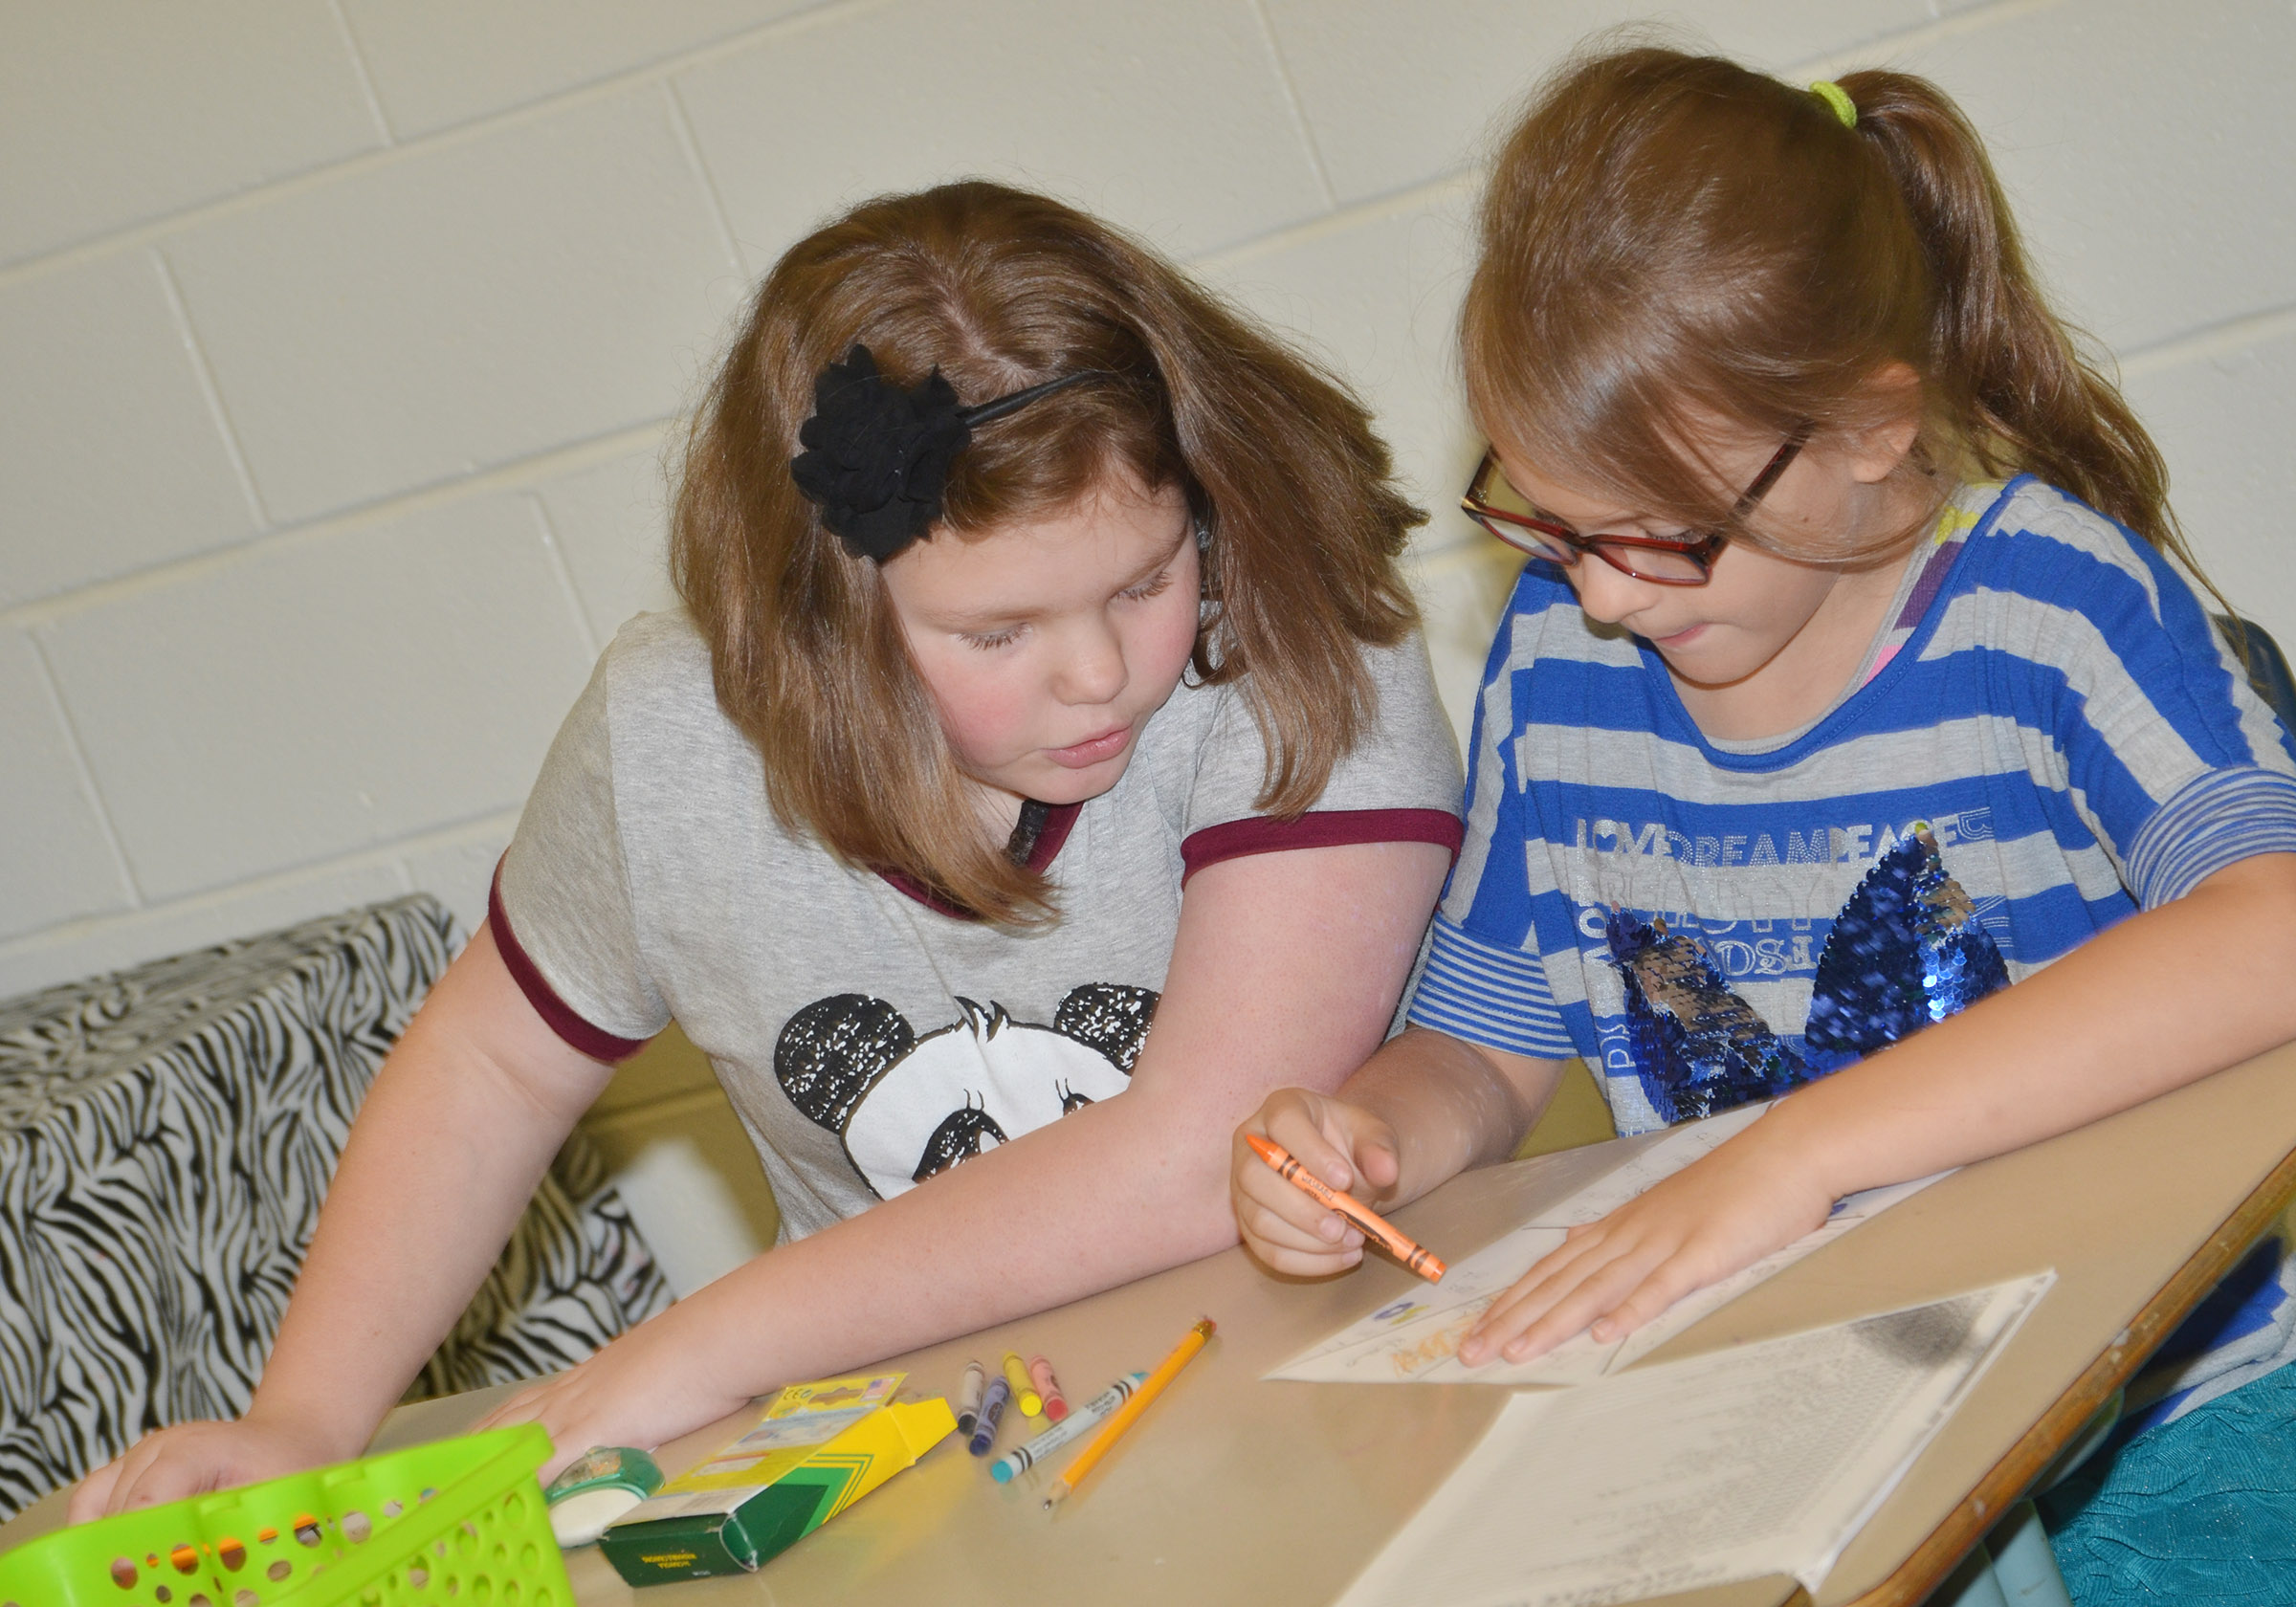 CES fifth-graders Averi Perkins, at left, and Brooklynn Giles complete an assignment to help their teacher learn about them.